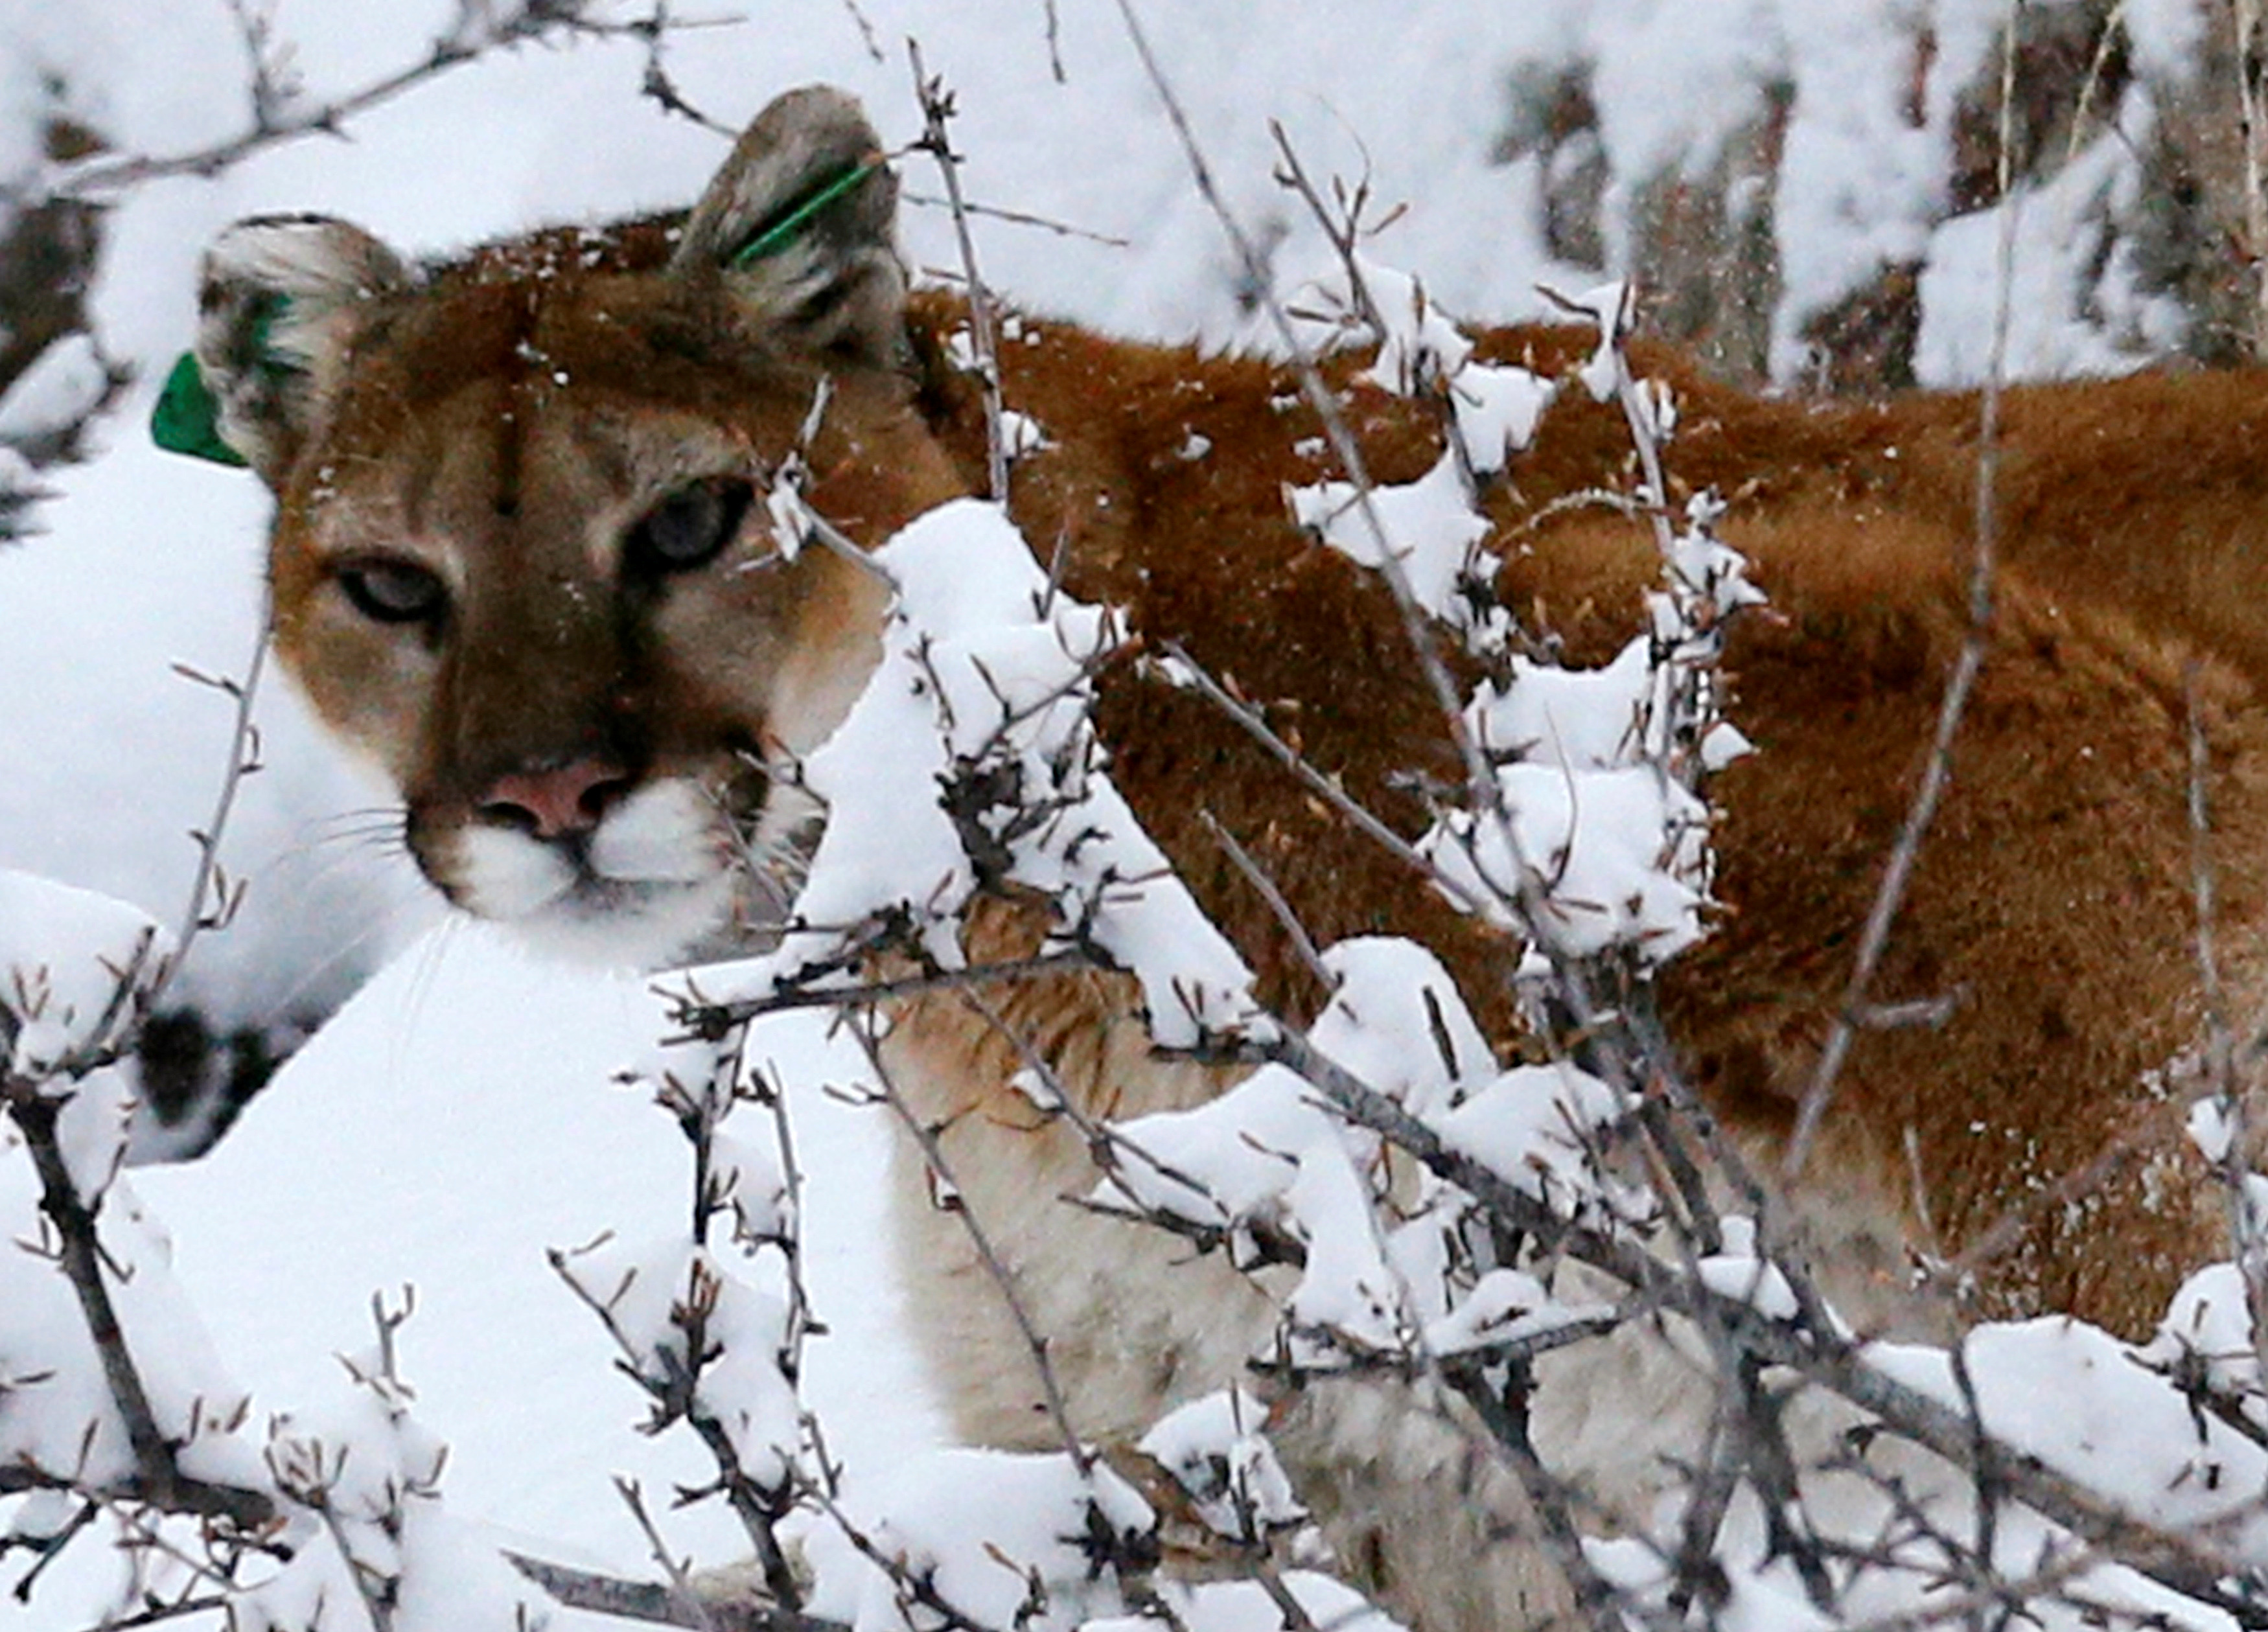 FILE PHOTO: A mountain lion makes its way through fresh snow in the foothills outside of Golden, Colorado April 3, 2014. REUTERS/Rick Wilking/File Photo